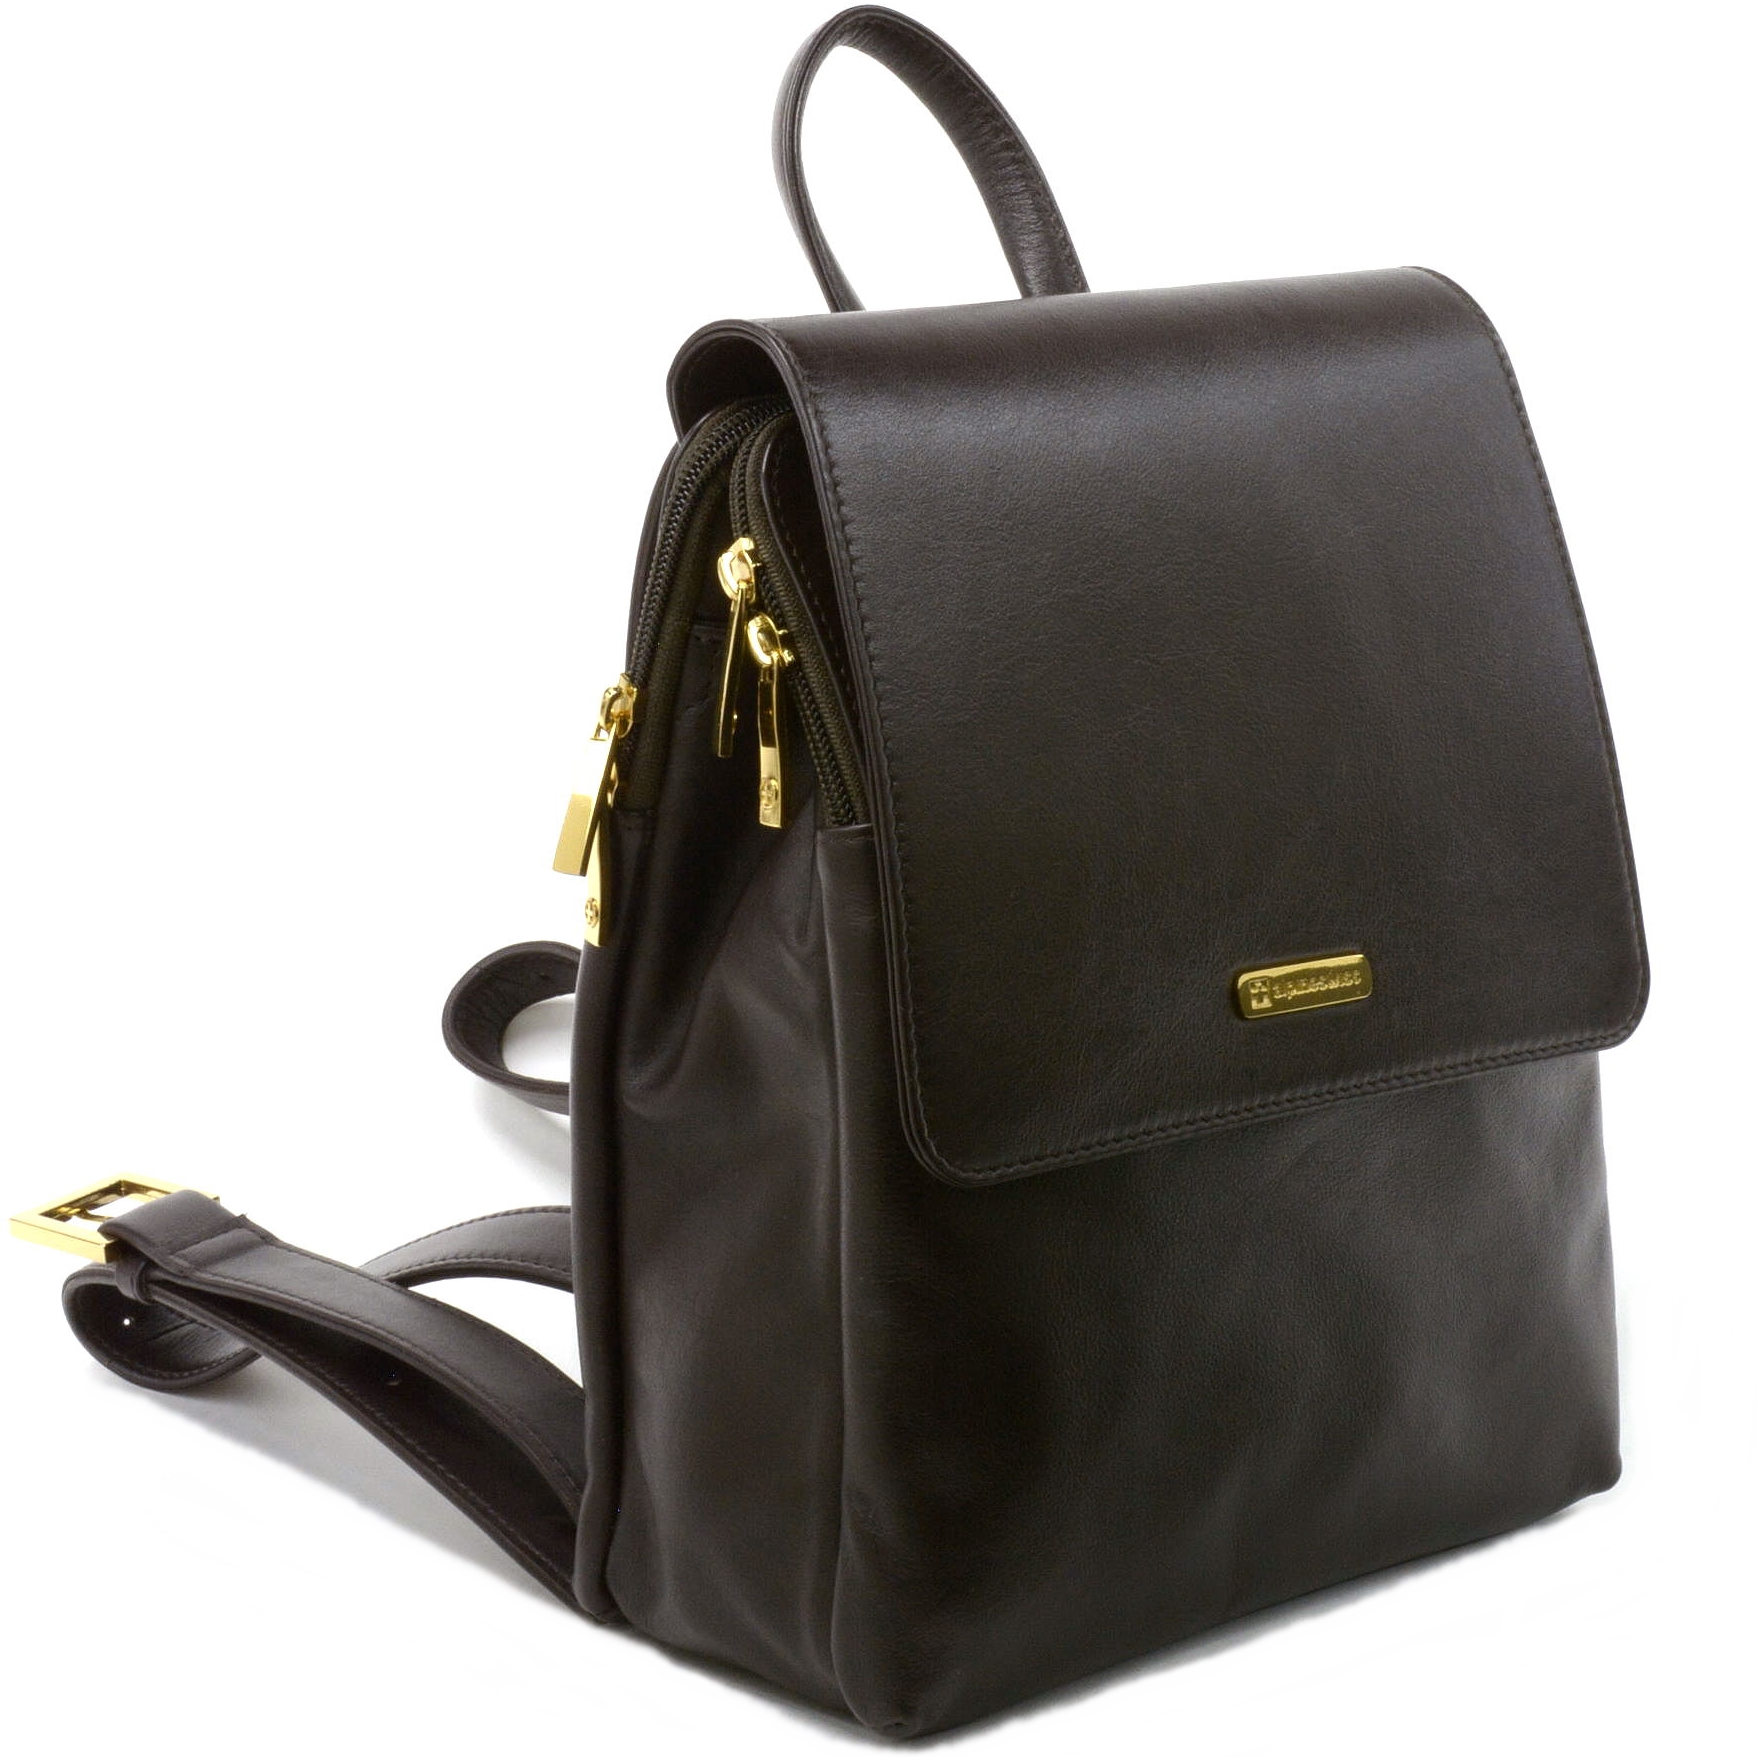 Find great deals on eBay for Ladies Leather Backpack in Women's Clothing, Handbags and Purses. Shop with confidence.